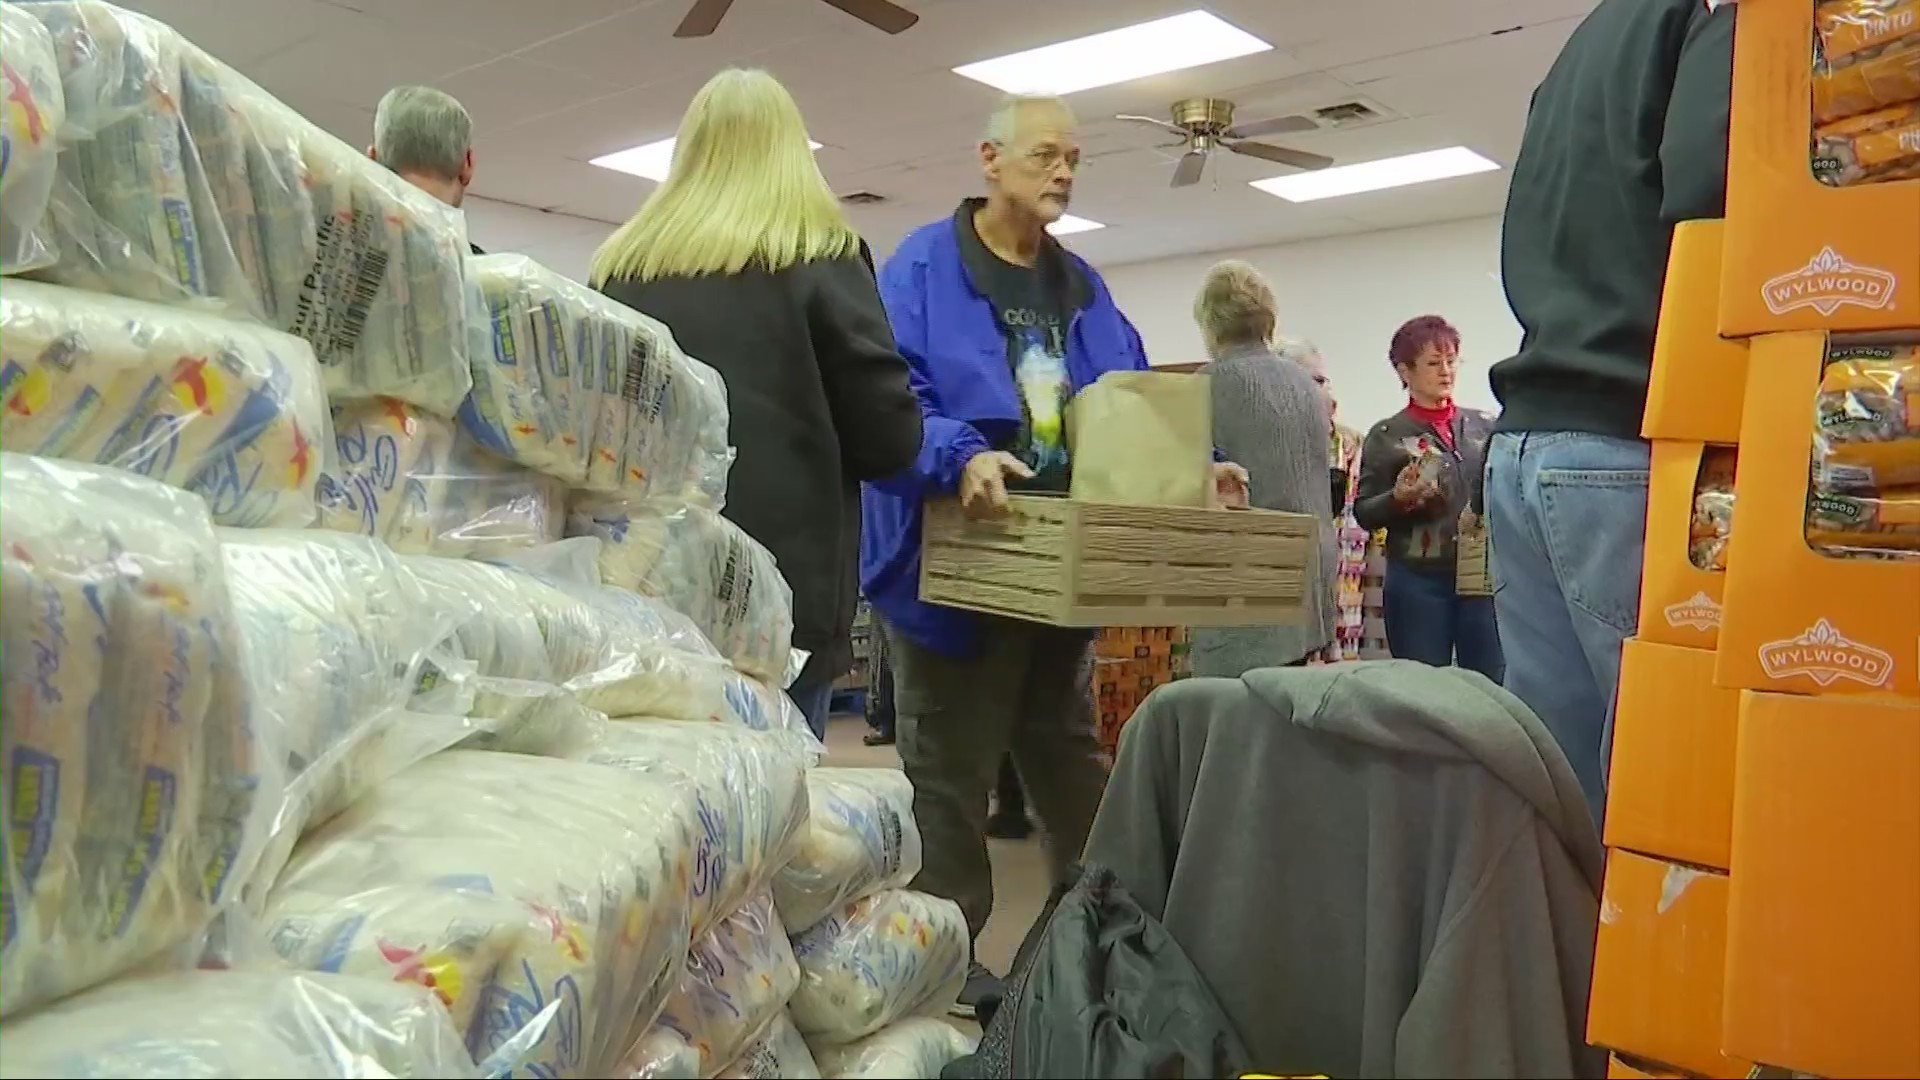 Ironton City Mission spreads holiday cheer